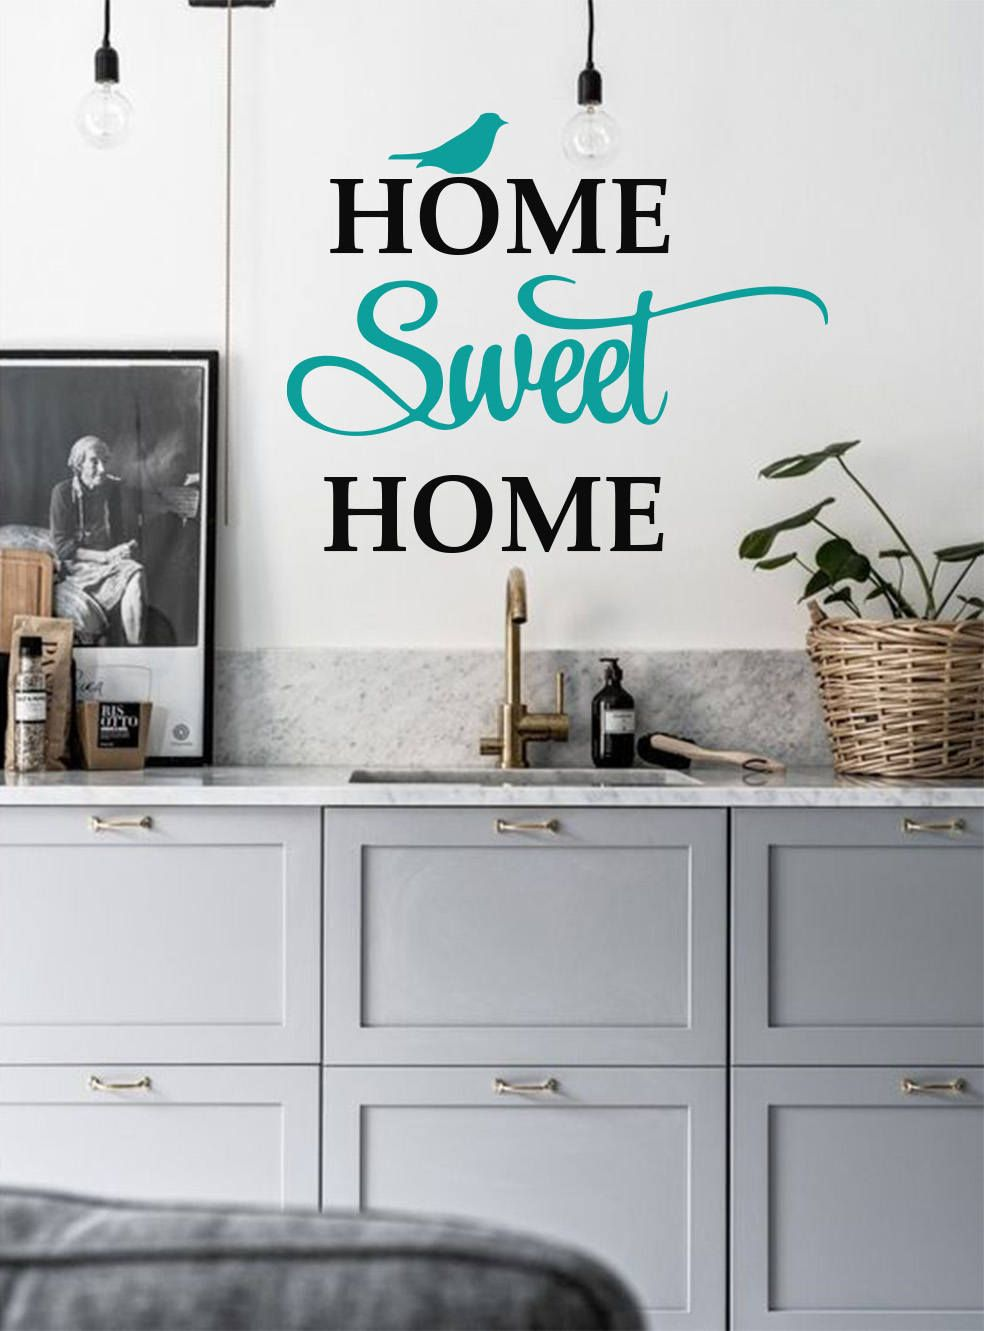 Home sweet home decal entrance hall room decor welcome wall decal family quote decals kitchen wall decals family vinyl stickers home decor by